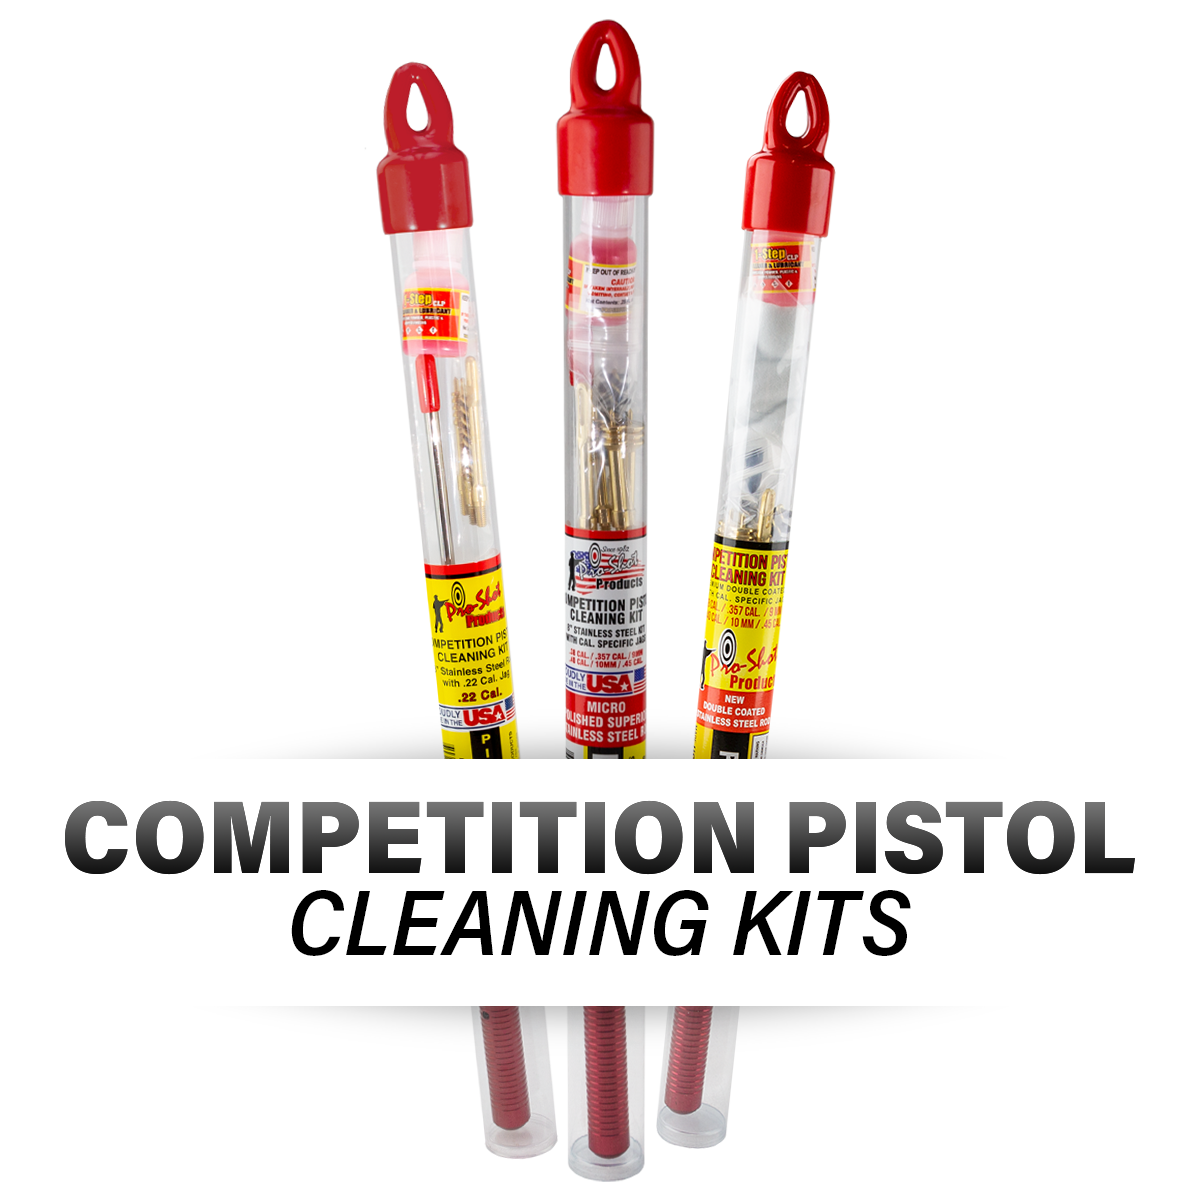 Competition Pistol Cleaning Kits